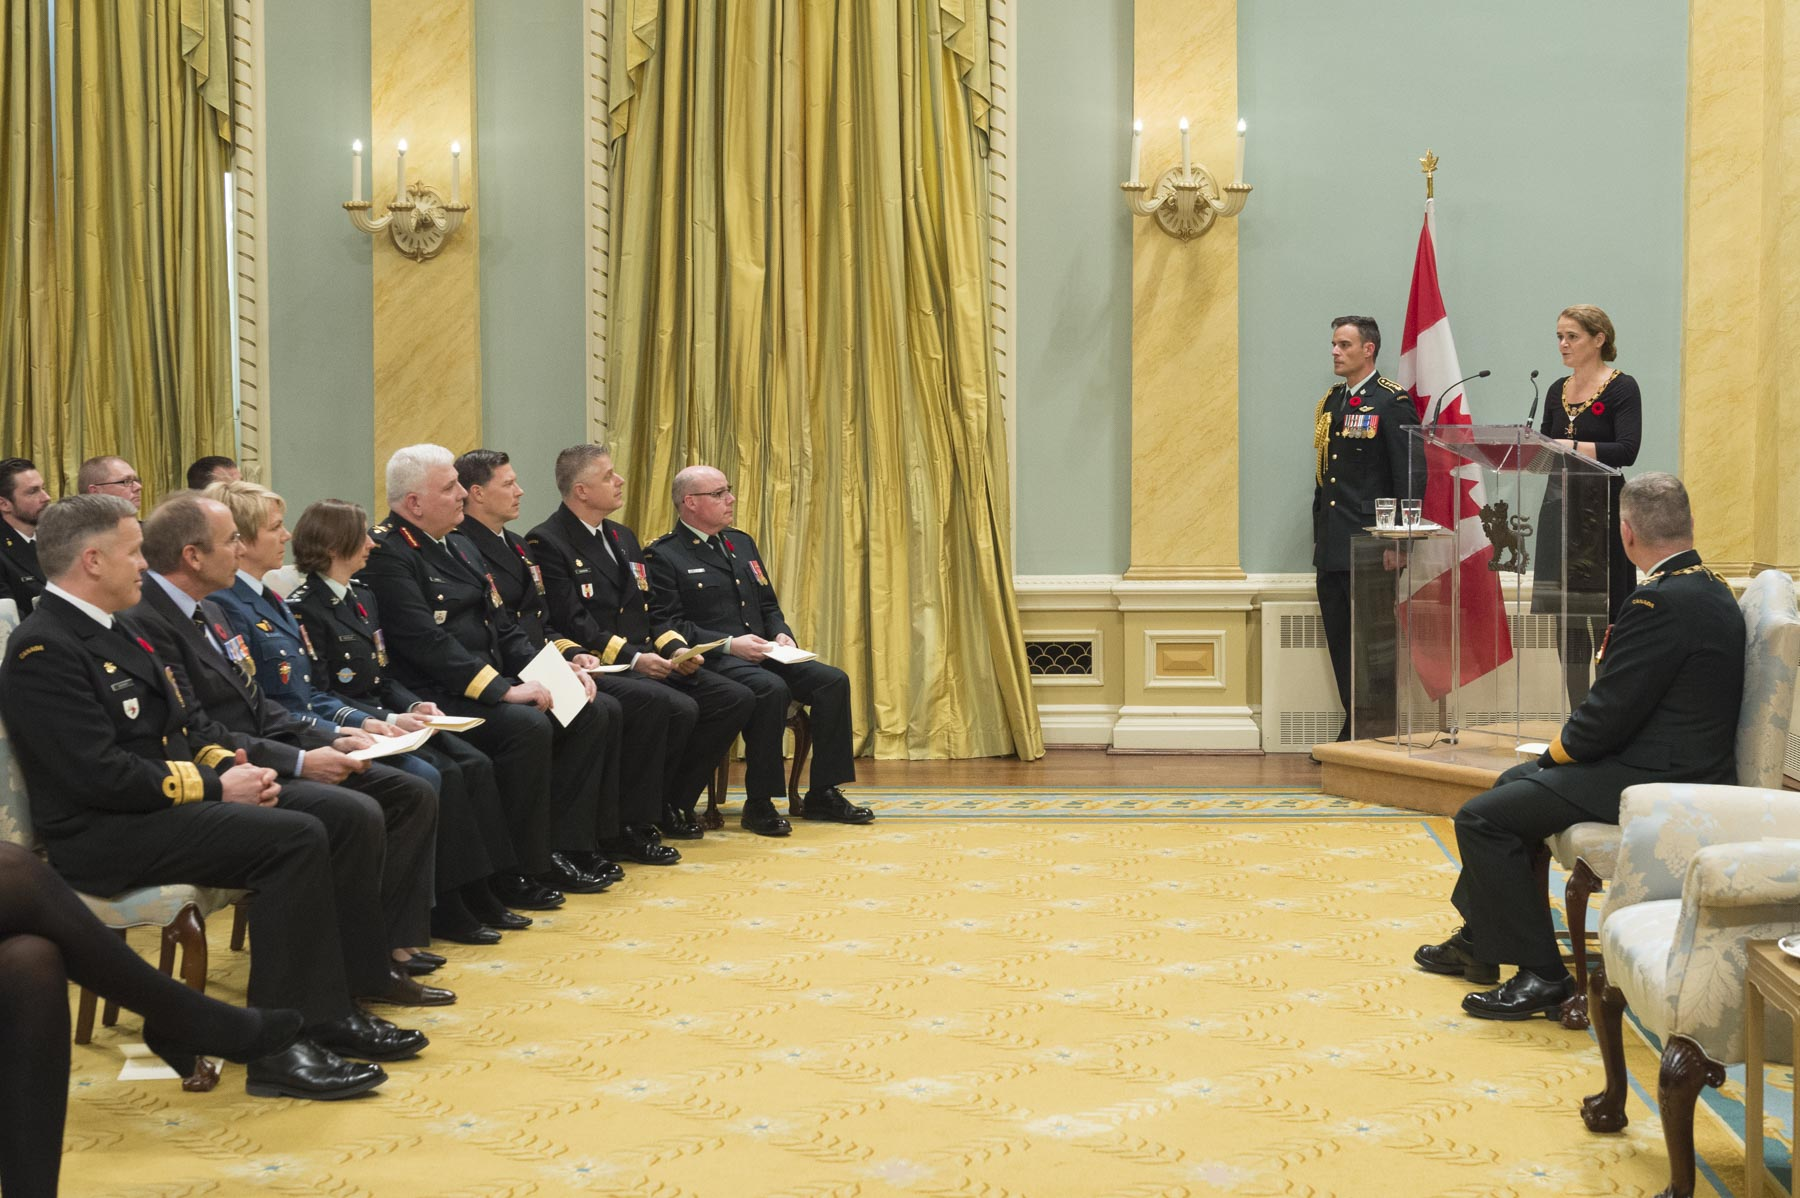 The Governor General and Commander-in-Chief of Canada, presided over an Order of Military Merit investiture ceremony at Rideau Hall, on November 10, 2017.